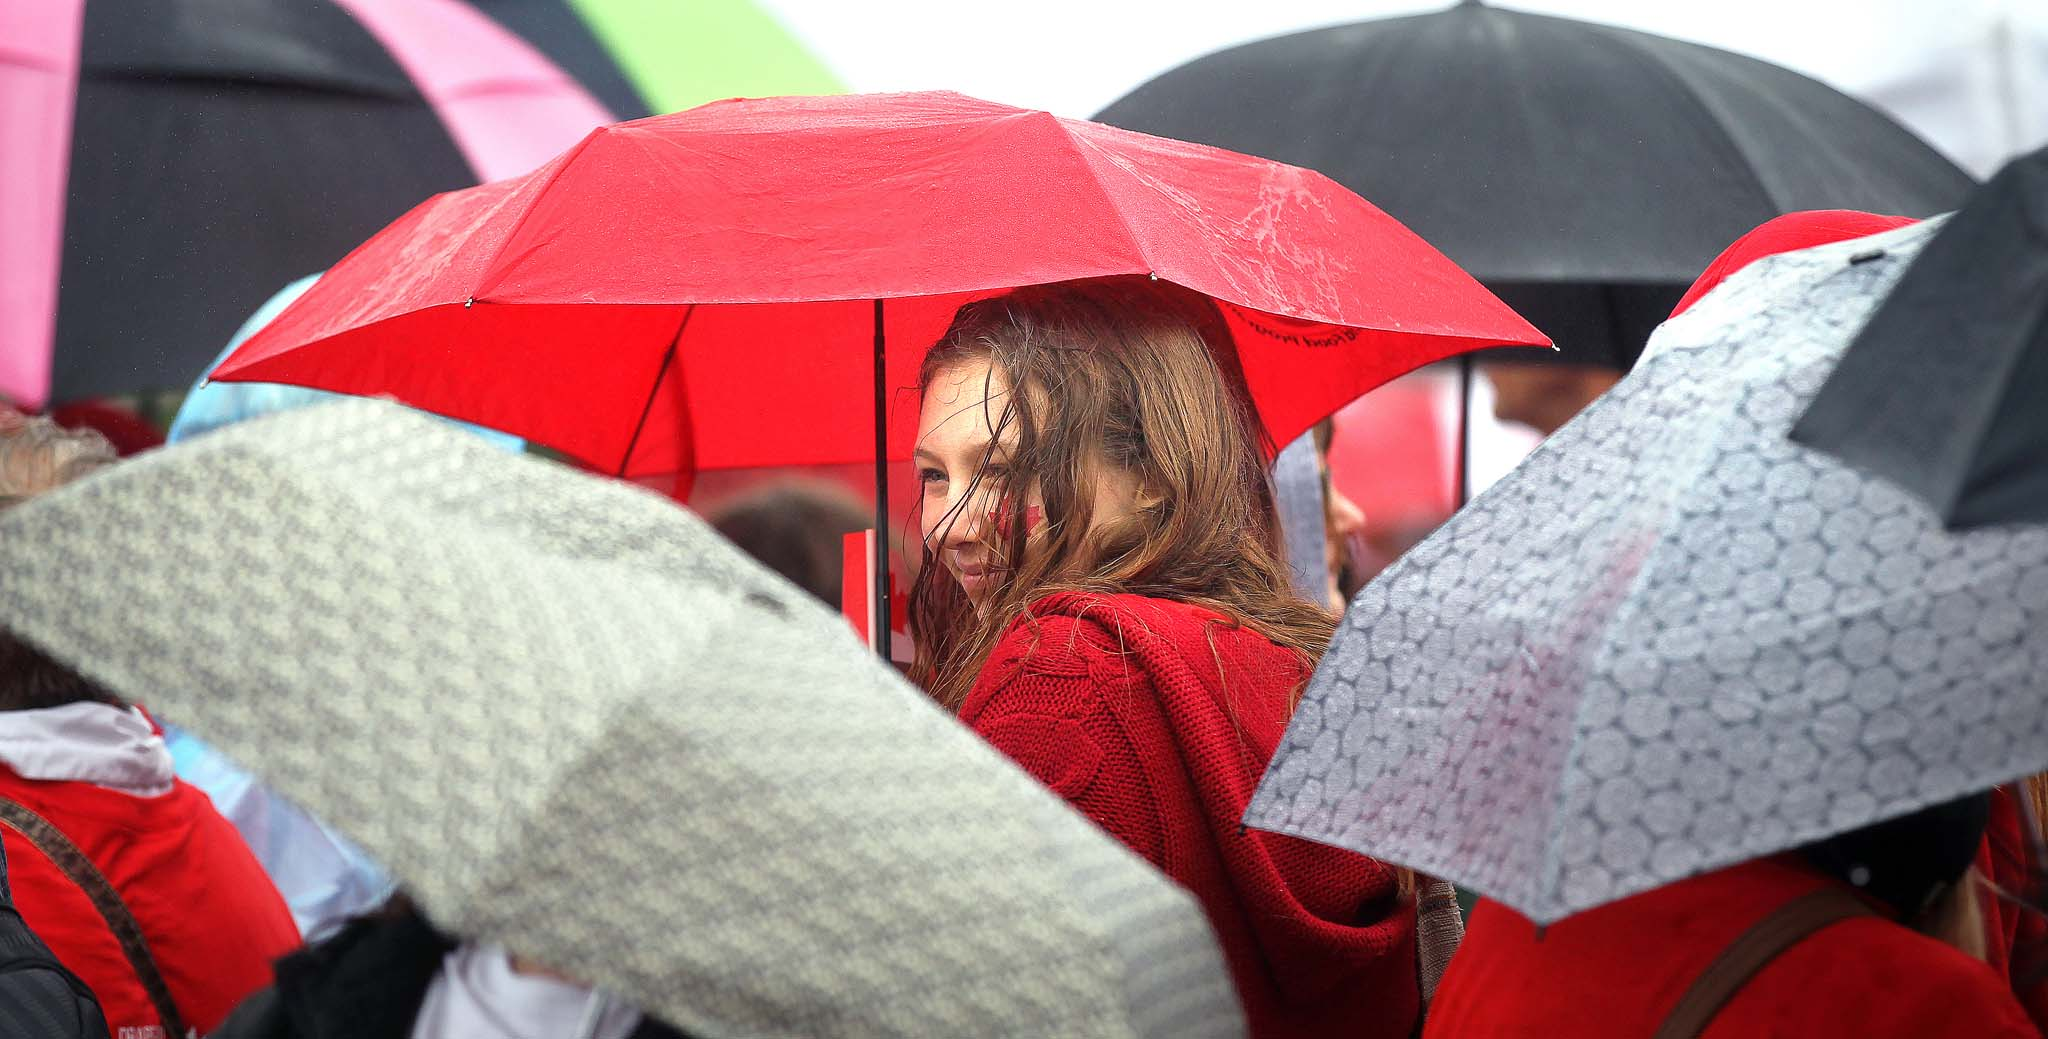 Framed in umbrellas, Elisabeth Kehler waits to participate.